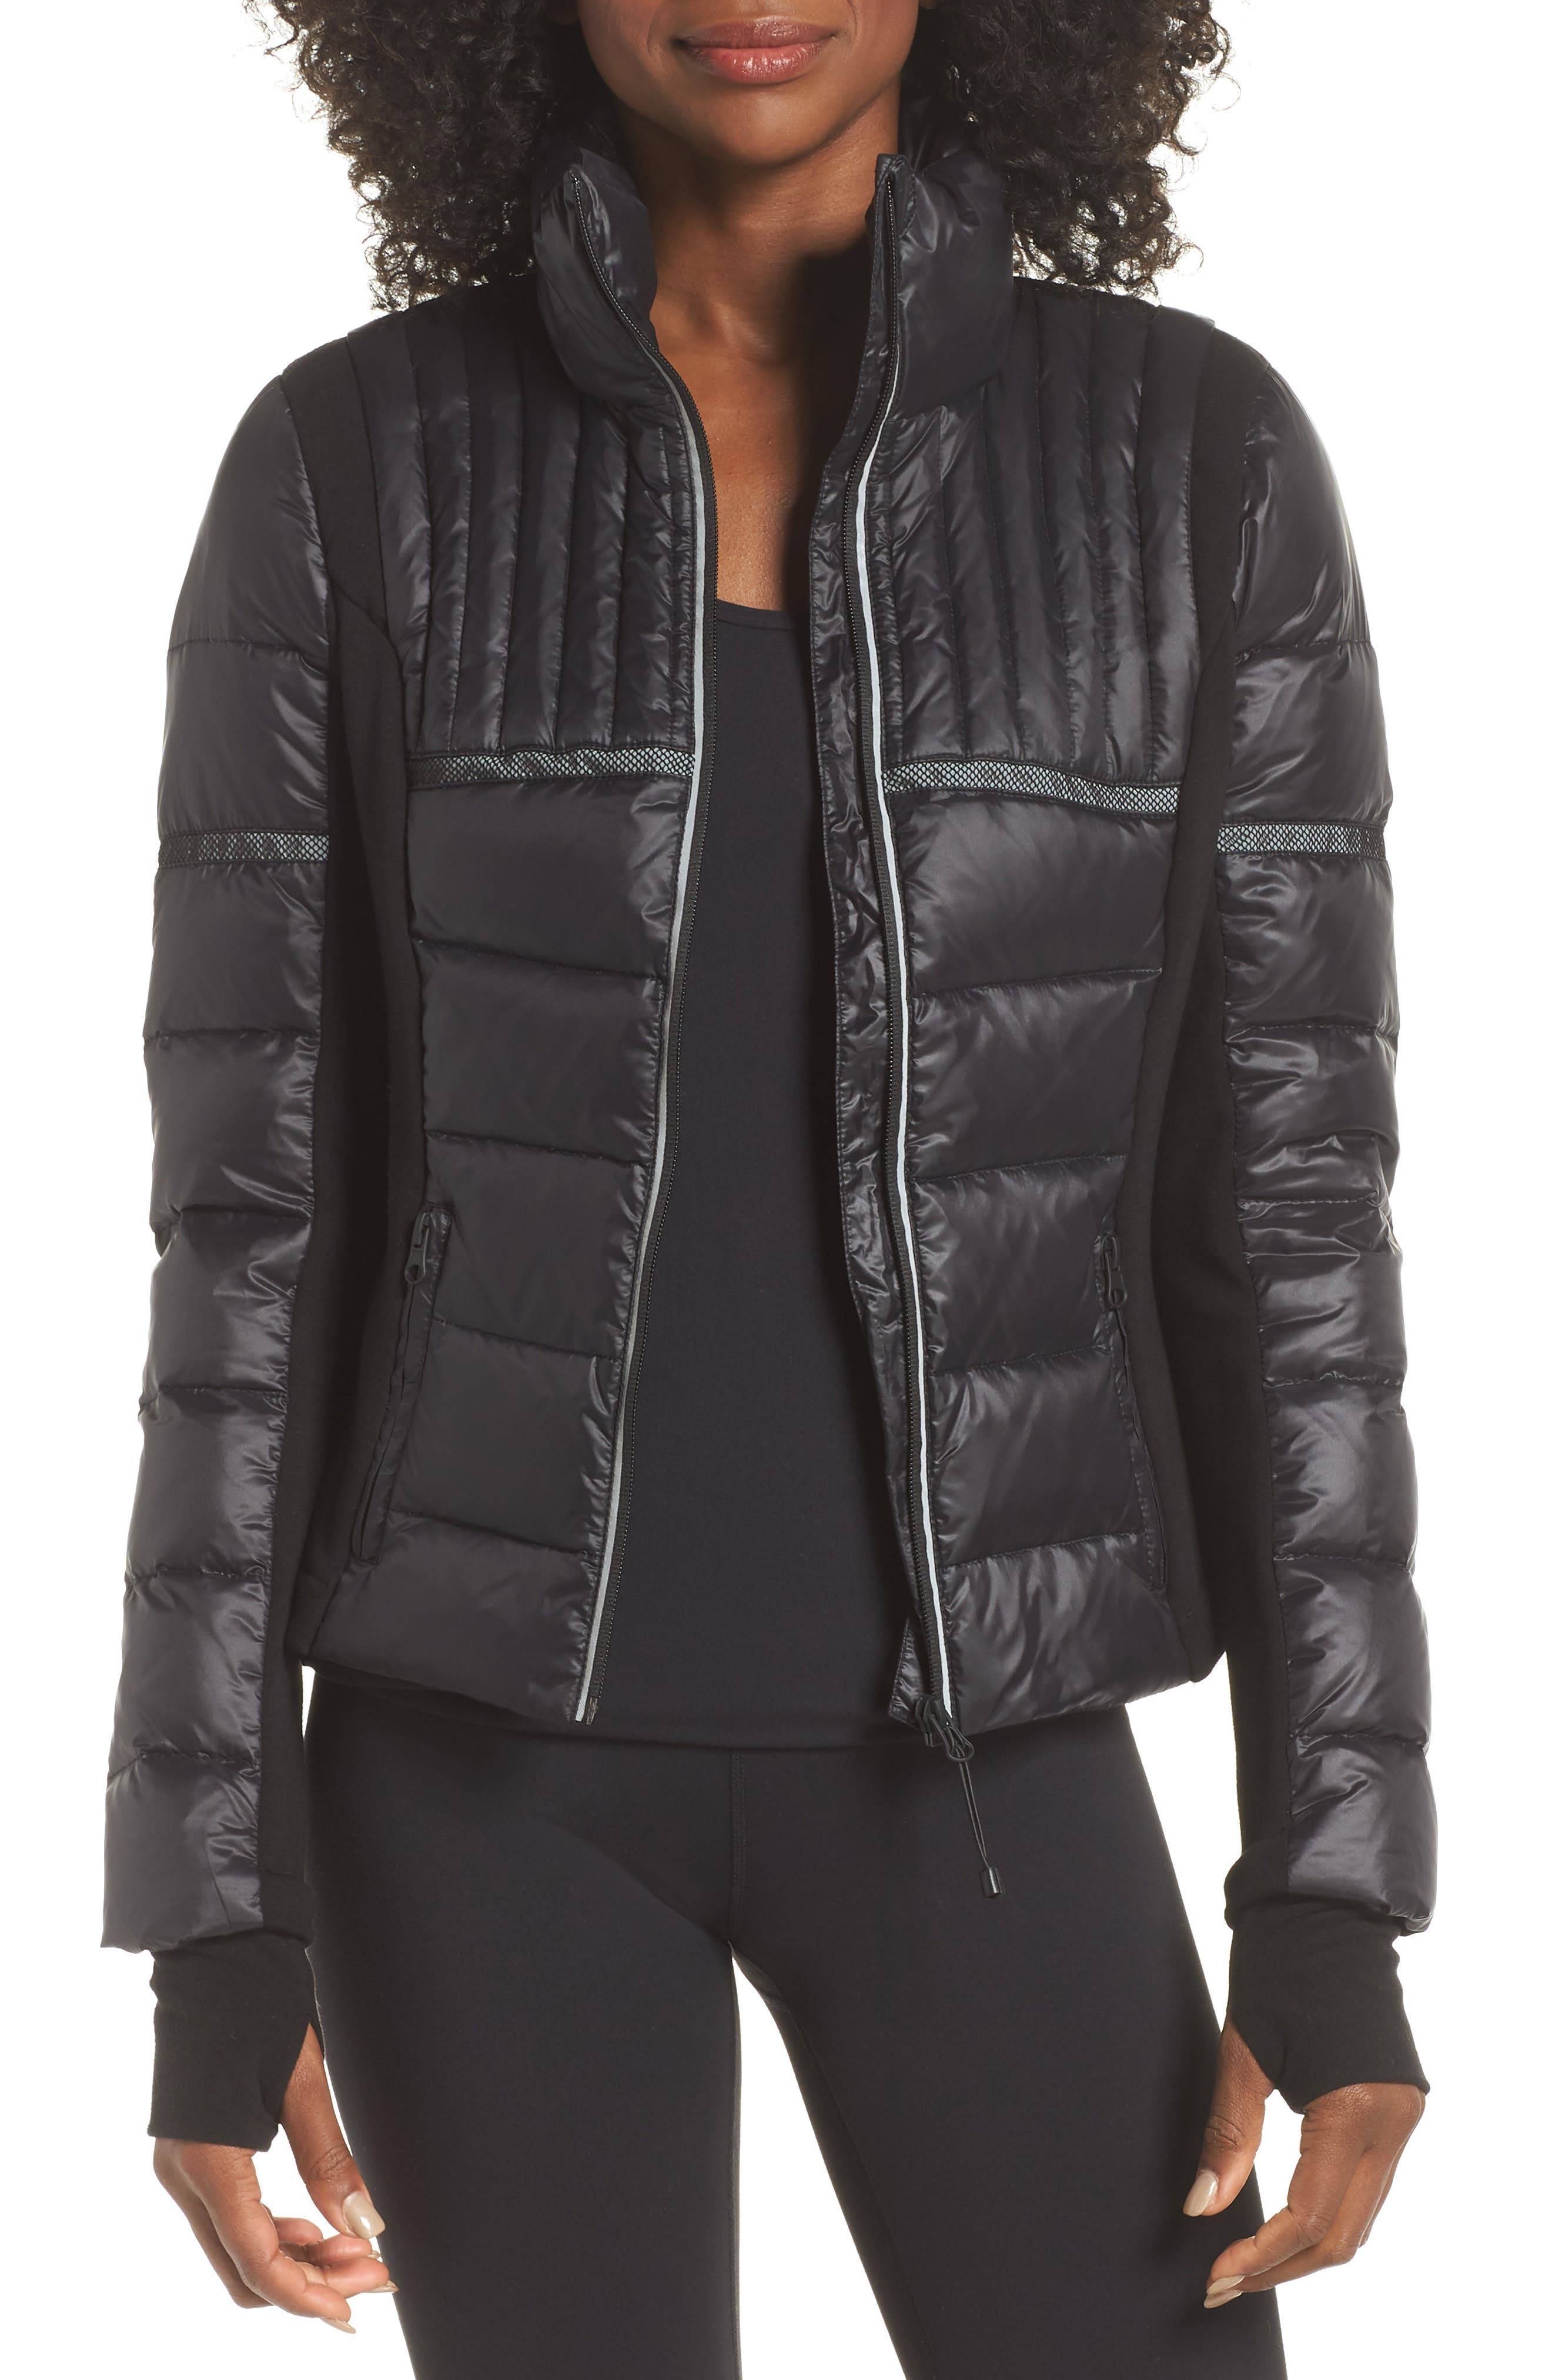 Blanc Noir Reflective Feather Weight Down Jacket, Black